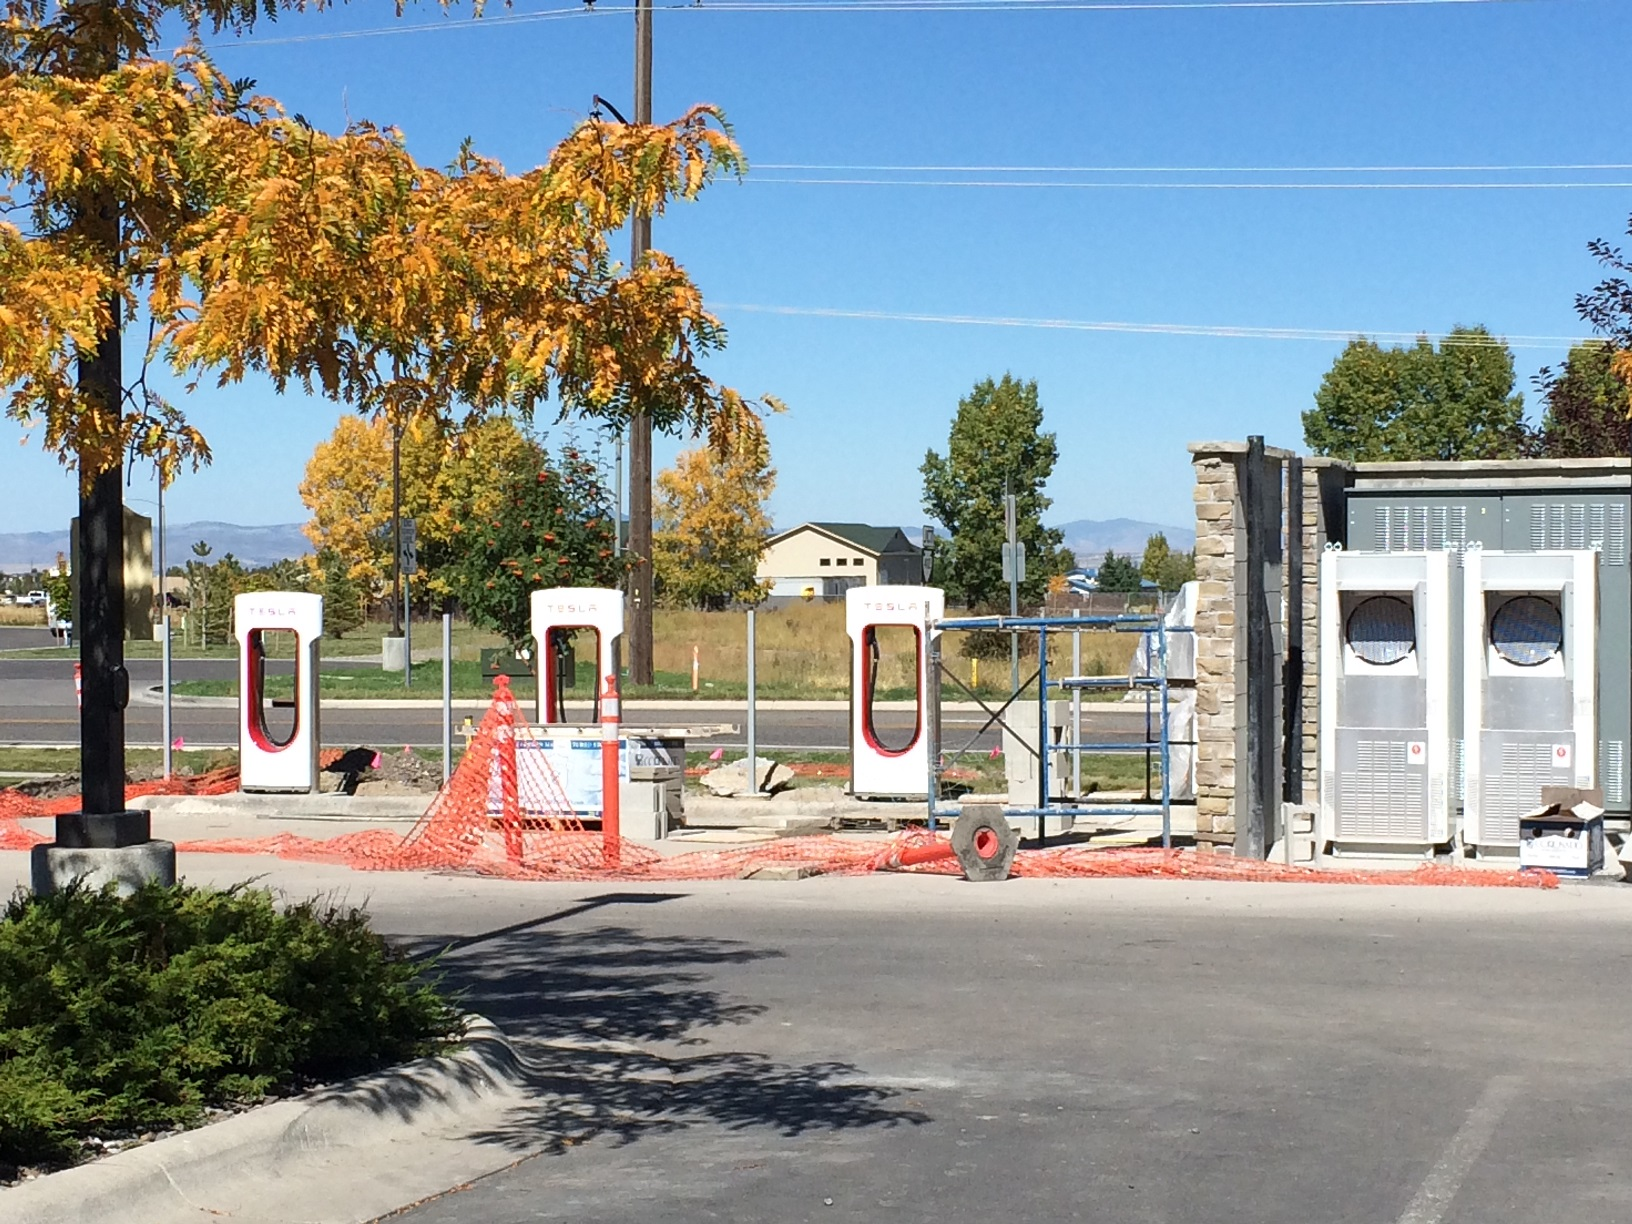 Bozeman_supercharger_20140922.jpg